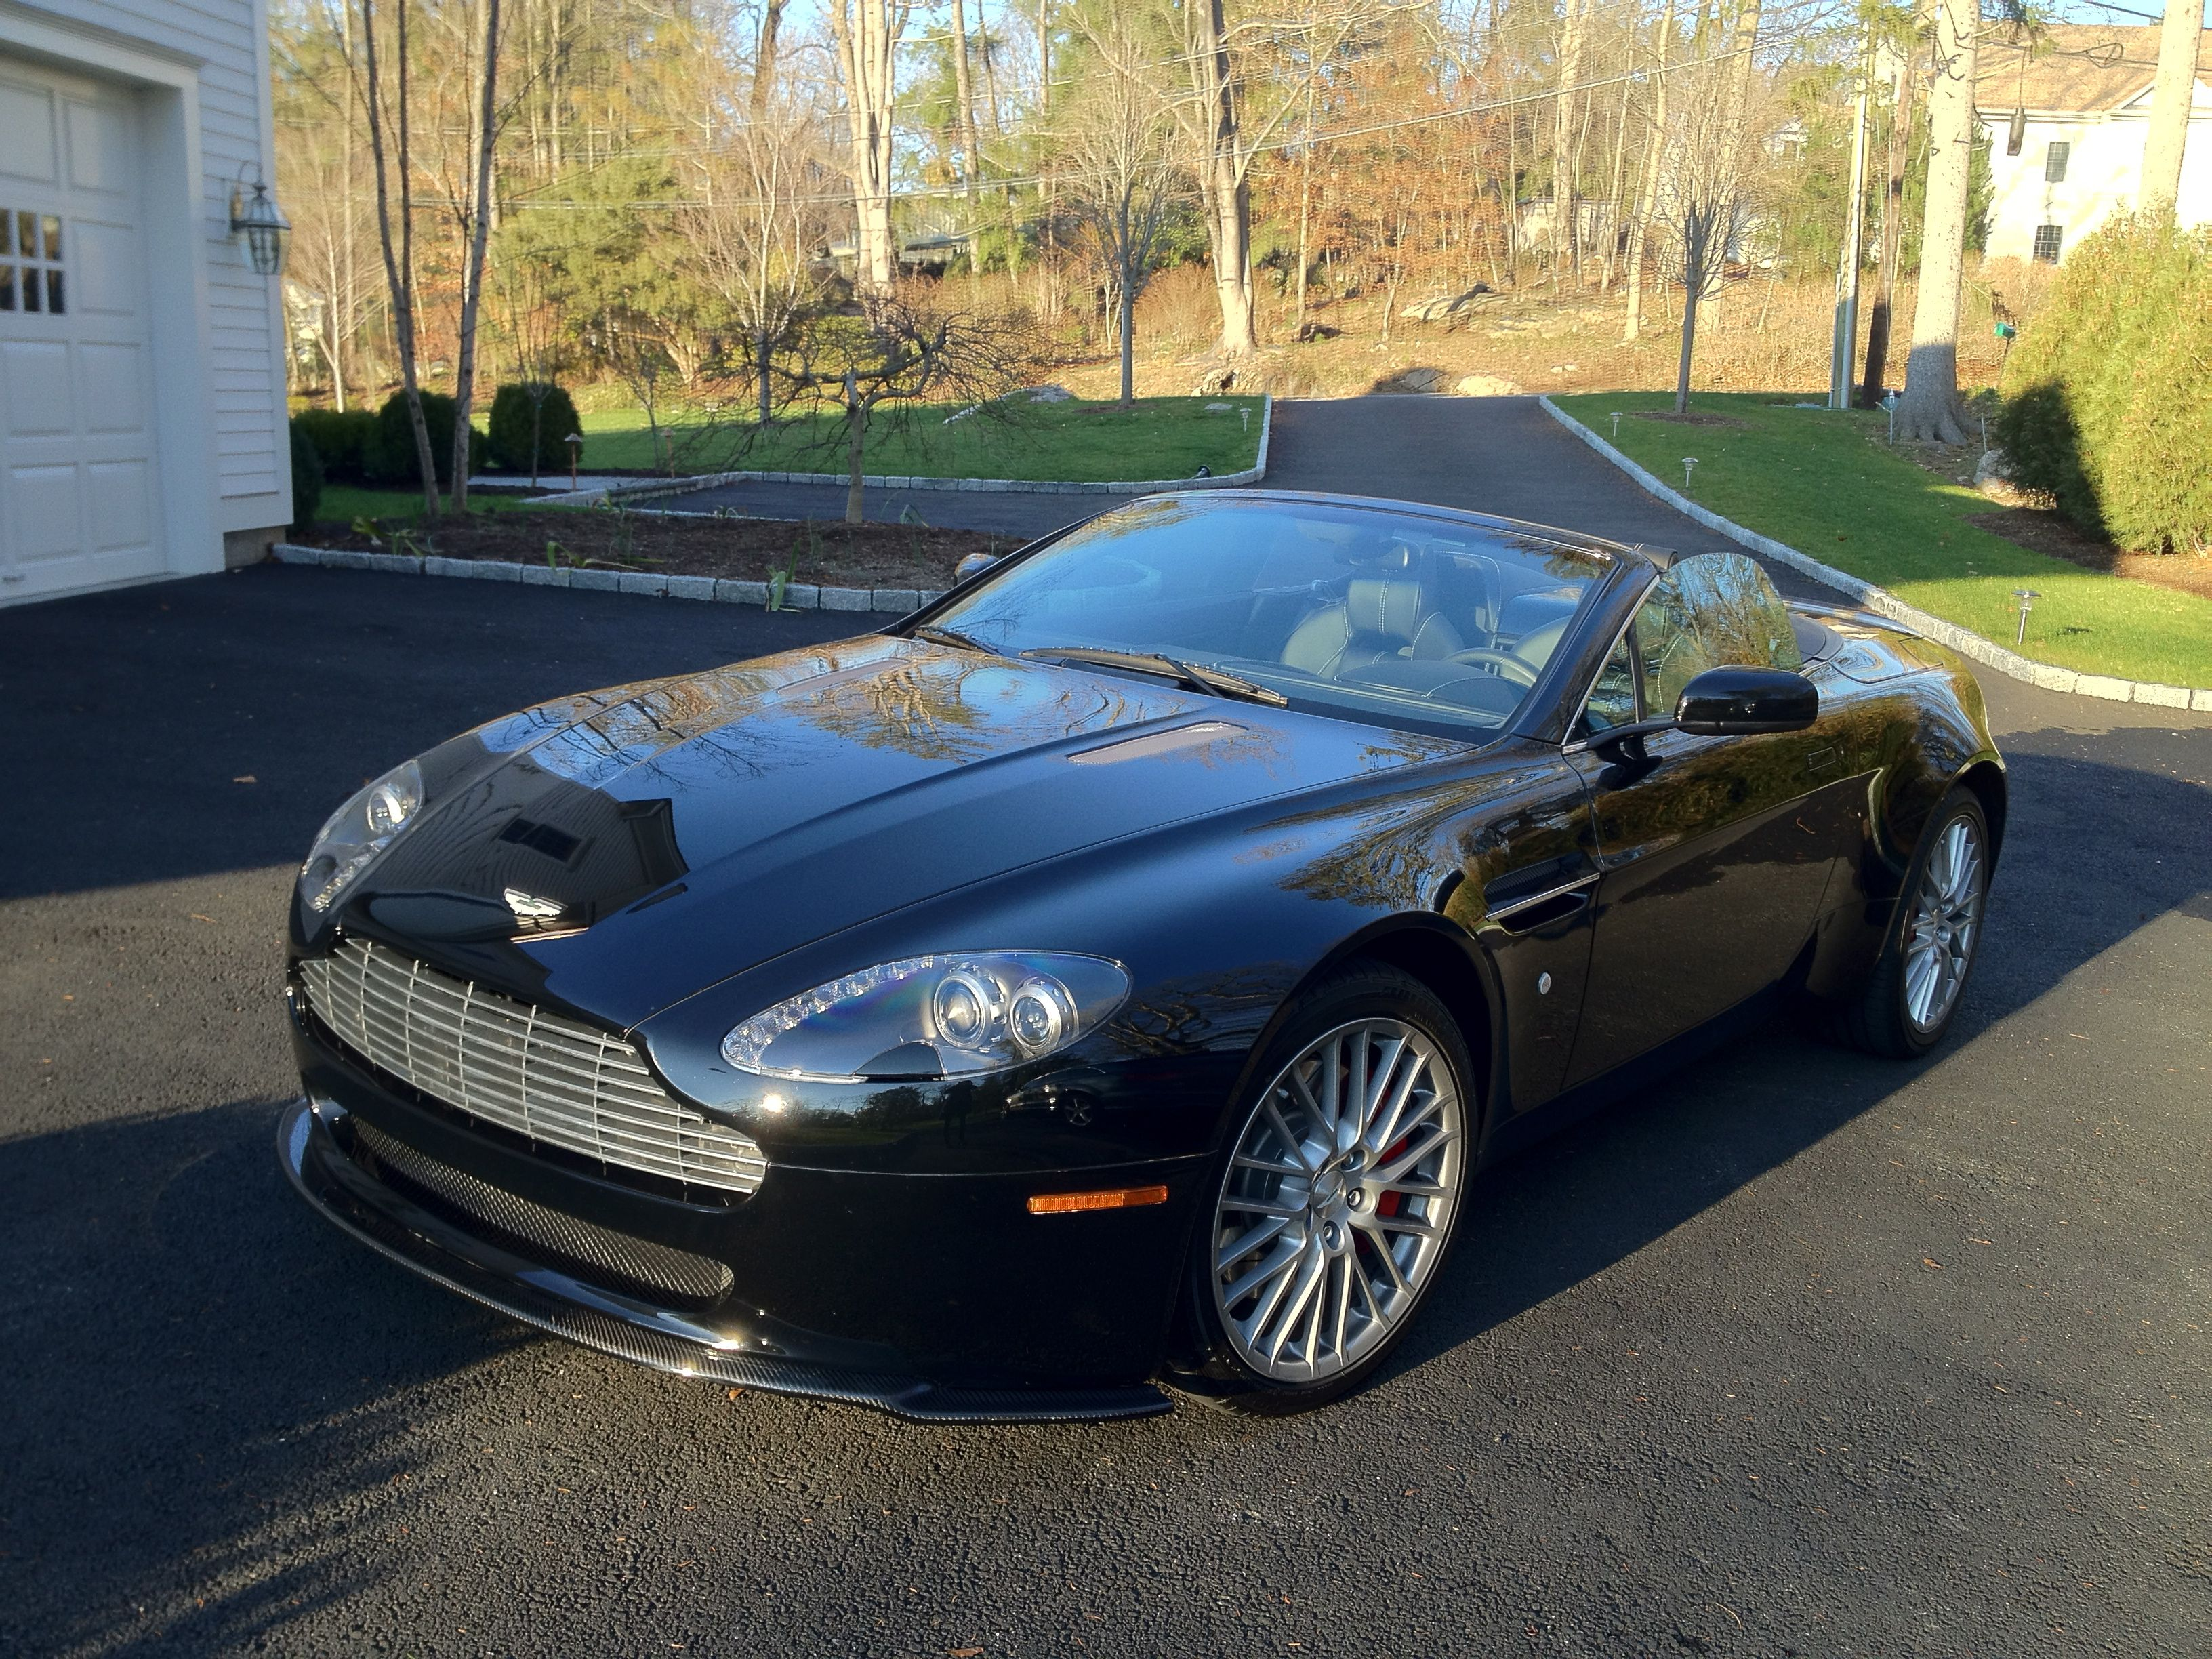 "Bianca"" my Aston Martin Vantage Products I Love"